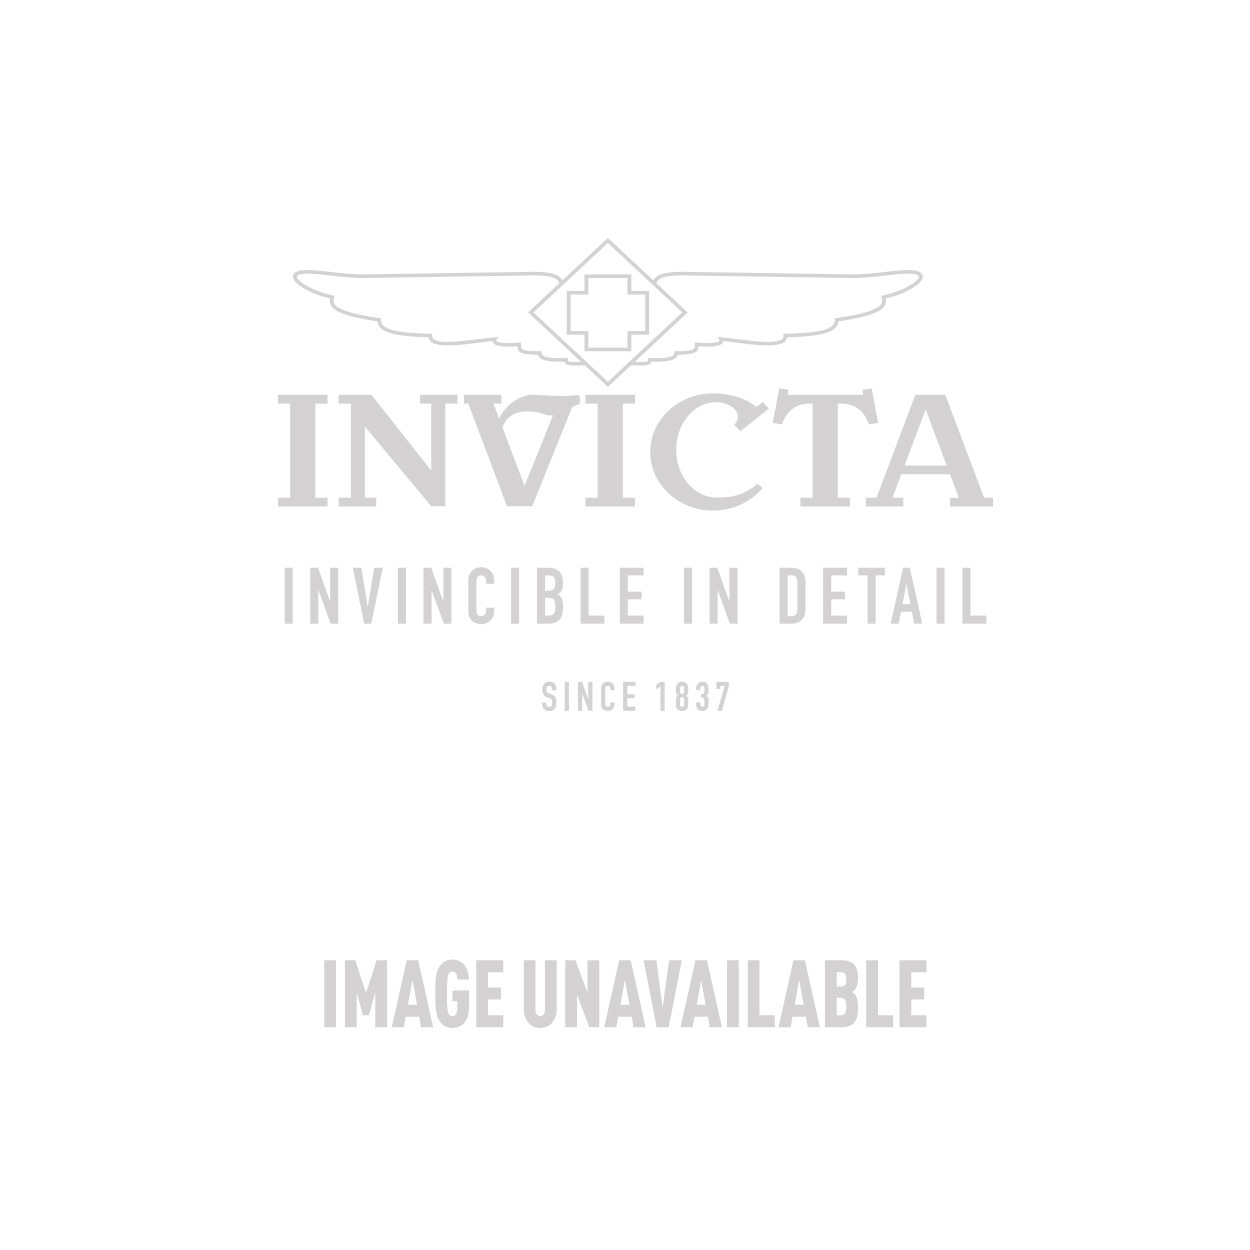 f67230994 Invicta Pro Diver watch in Gold, Stainless Steel - Model 18510